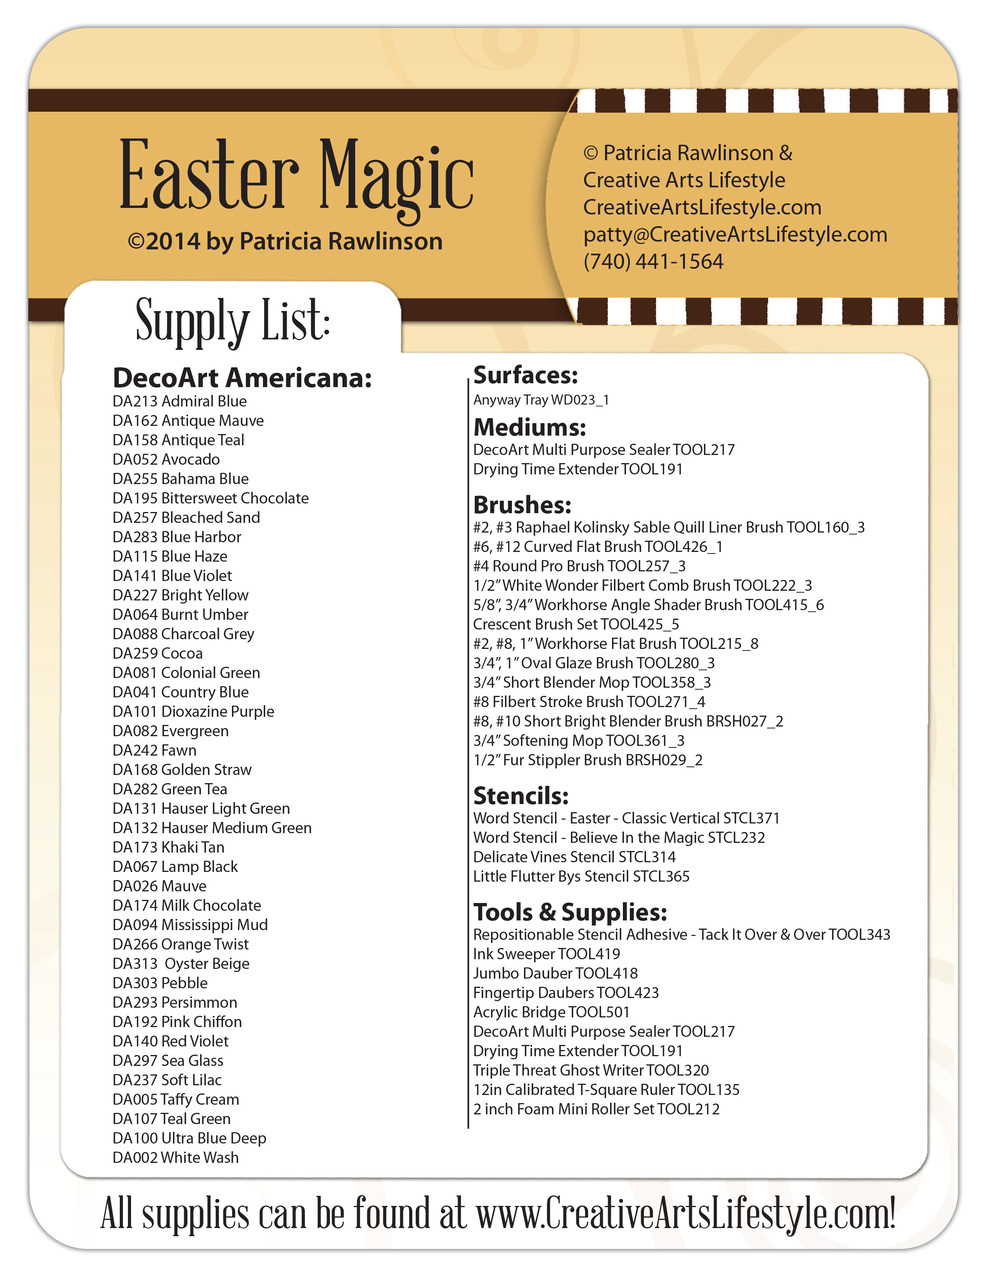 Easter Magic - E-Packet - Patricia Rawlinson